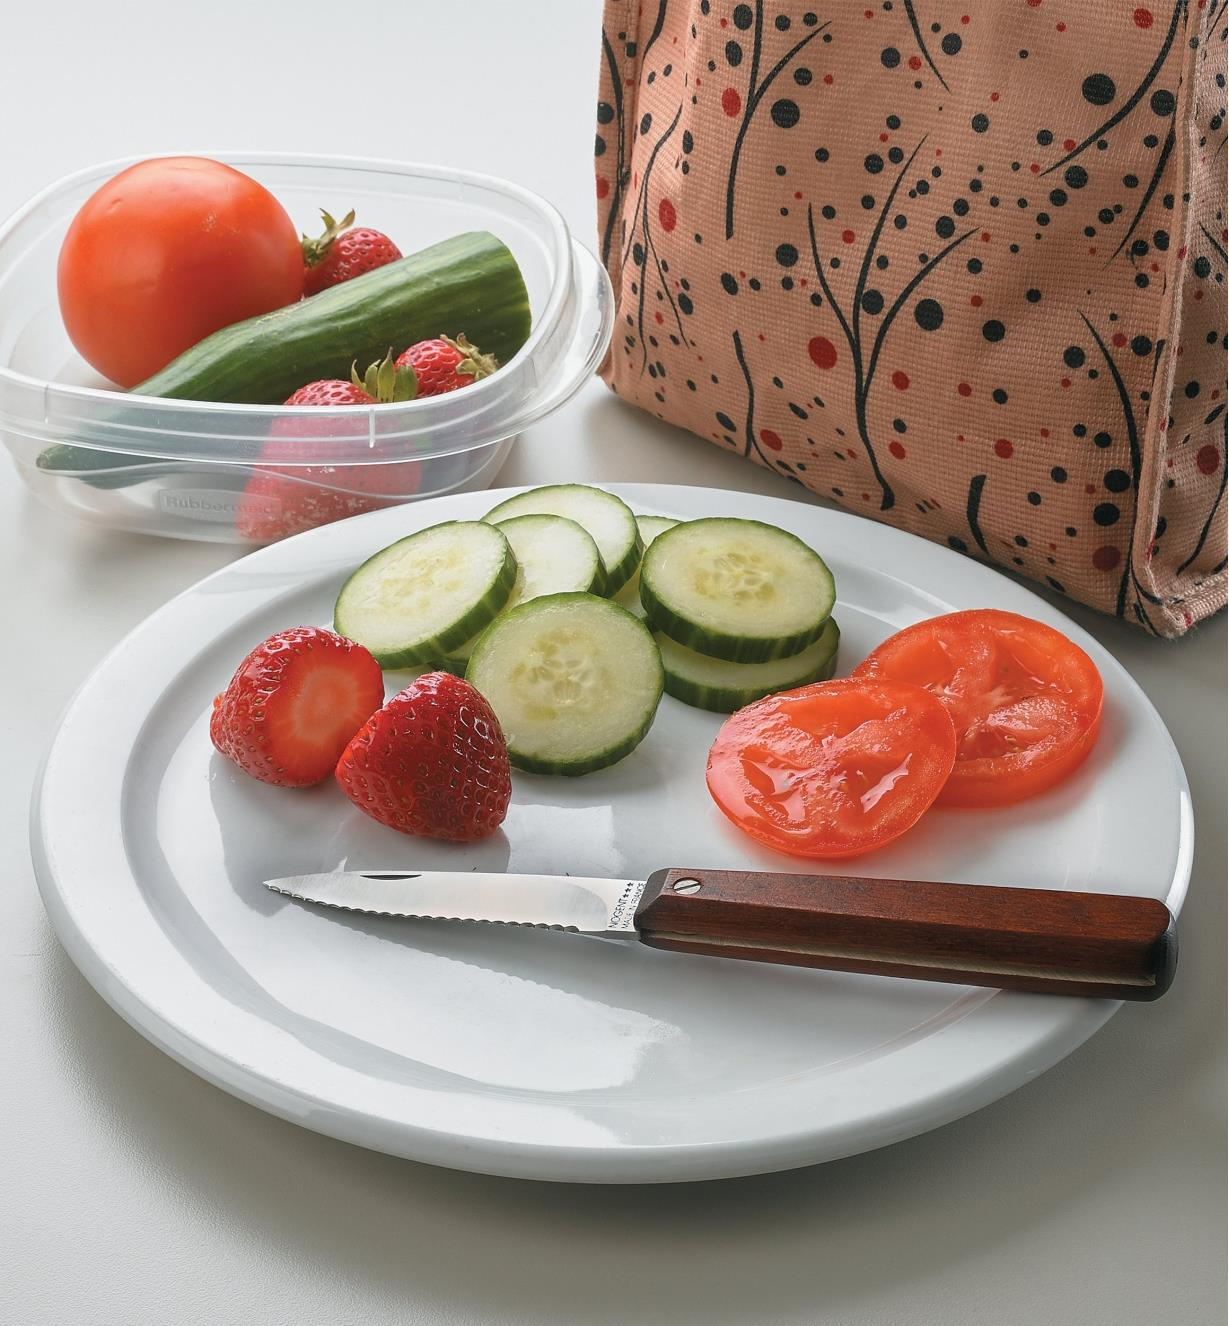 Lunchbox Pocket Knife sitting on a plate with sliced berries and vegetables next to a lunch bag